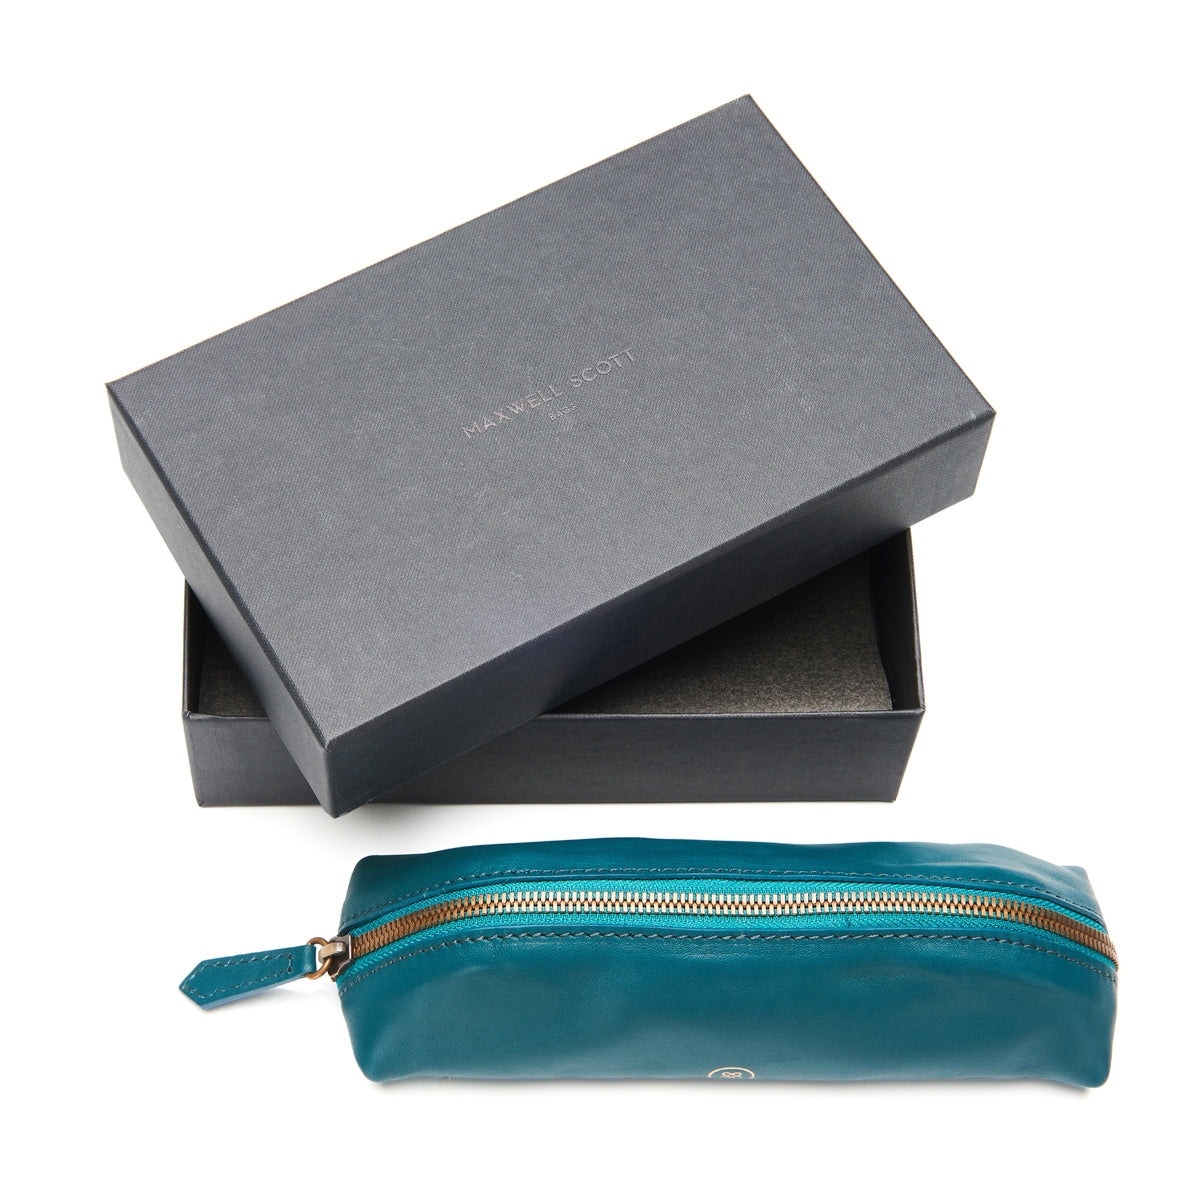 Image 6 of the 'Felice' Leather Pencil Case